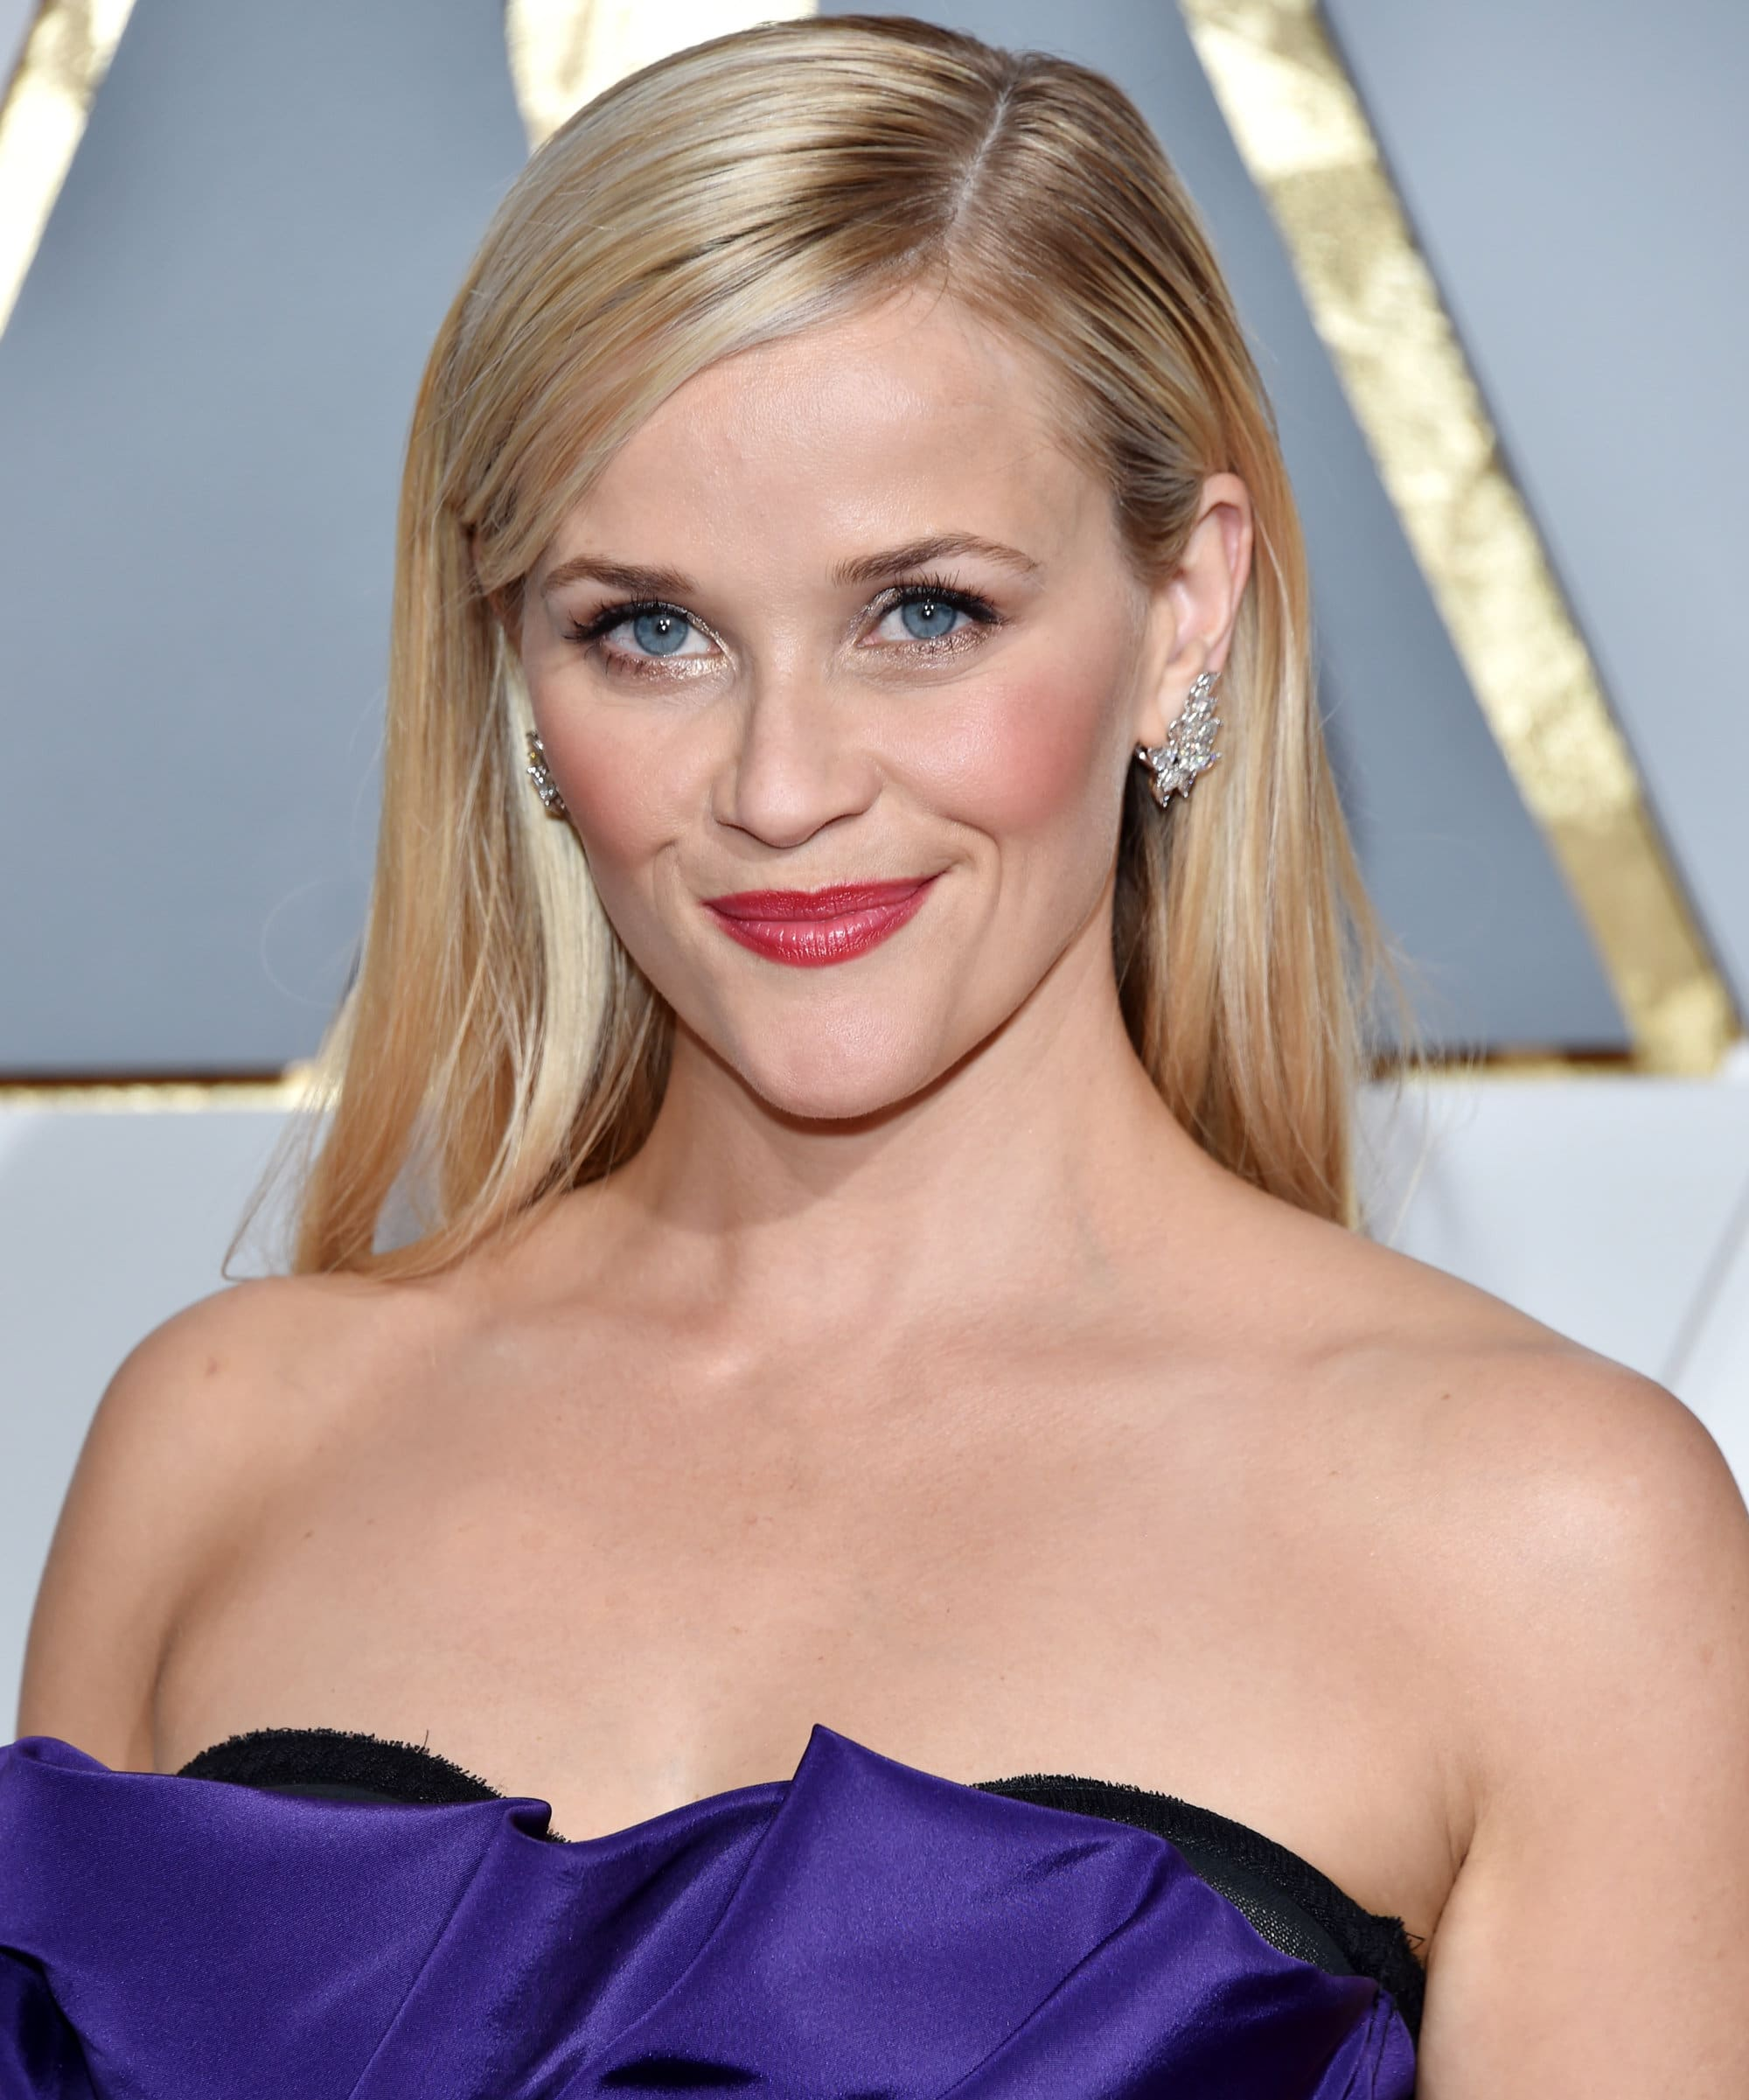 Reese Witherspoon To Star In The Final Season of 'The ... James Franco Movies